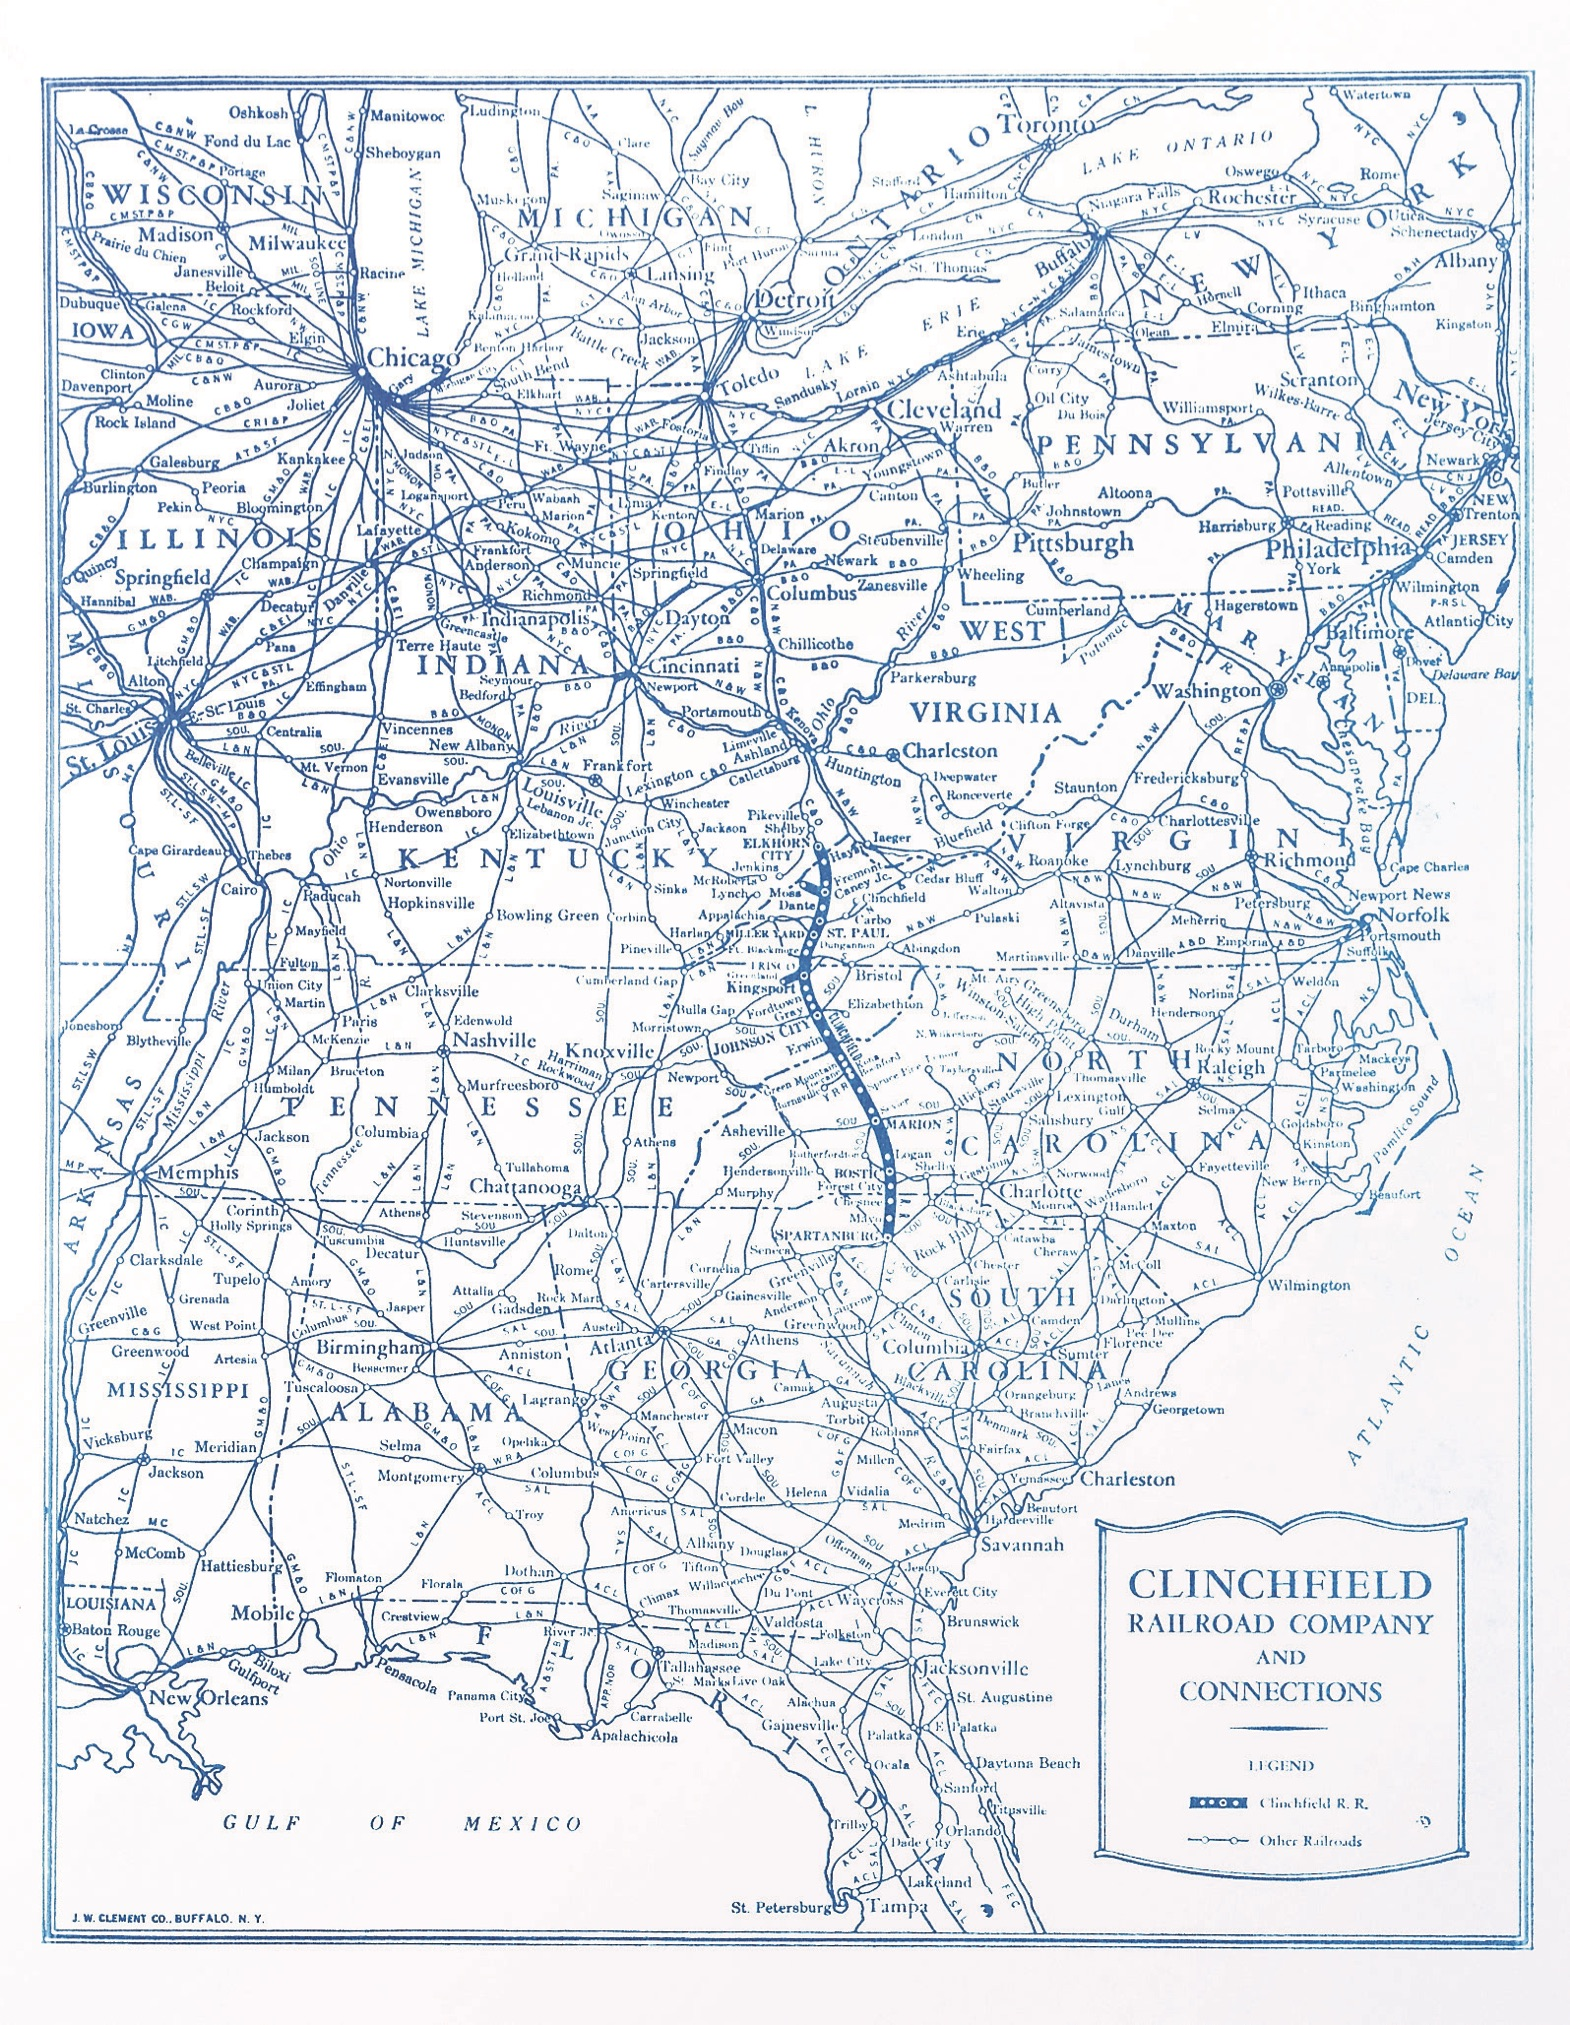 Clinchfield's 277-mile, 5-state line stretched from Elkhorn City, Kentucky, to Spartanburg, South Carolina.